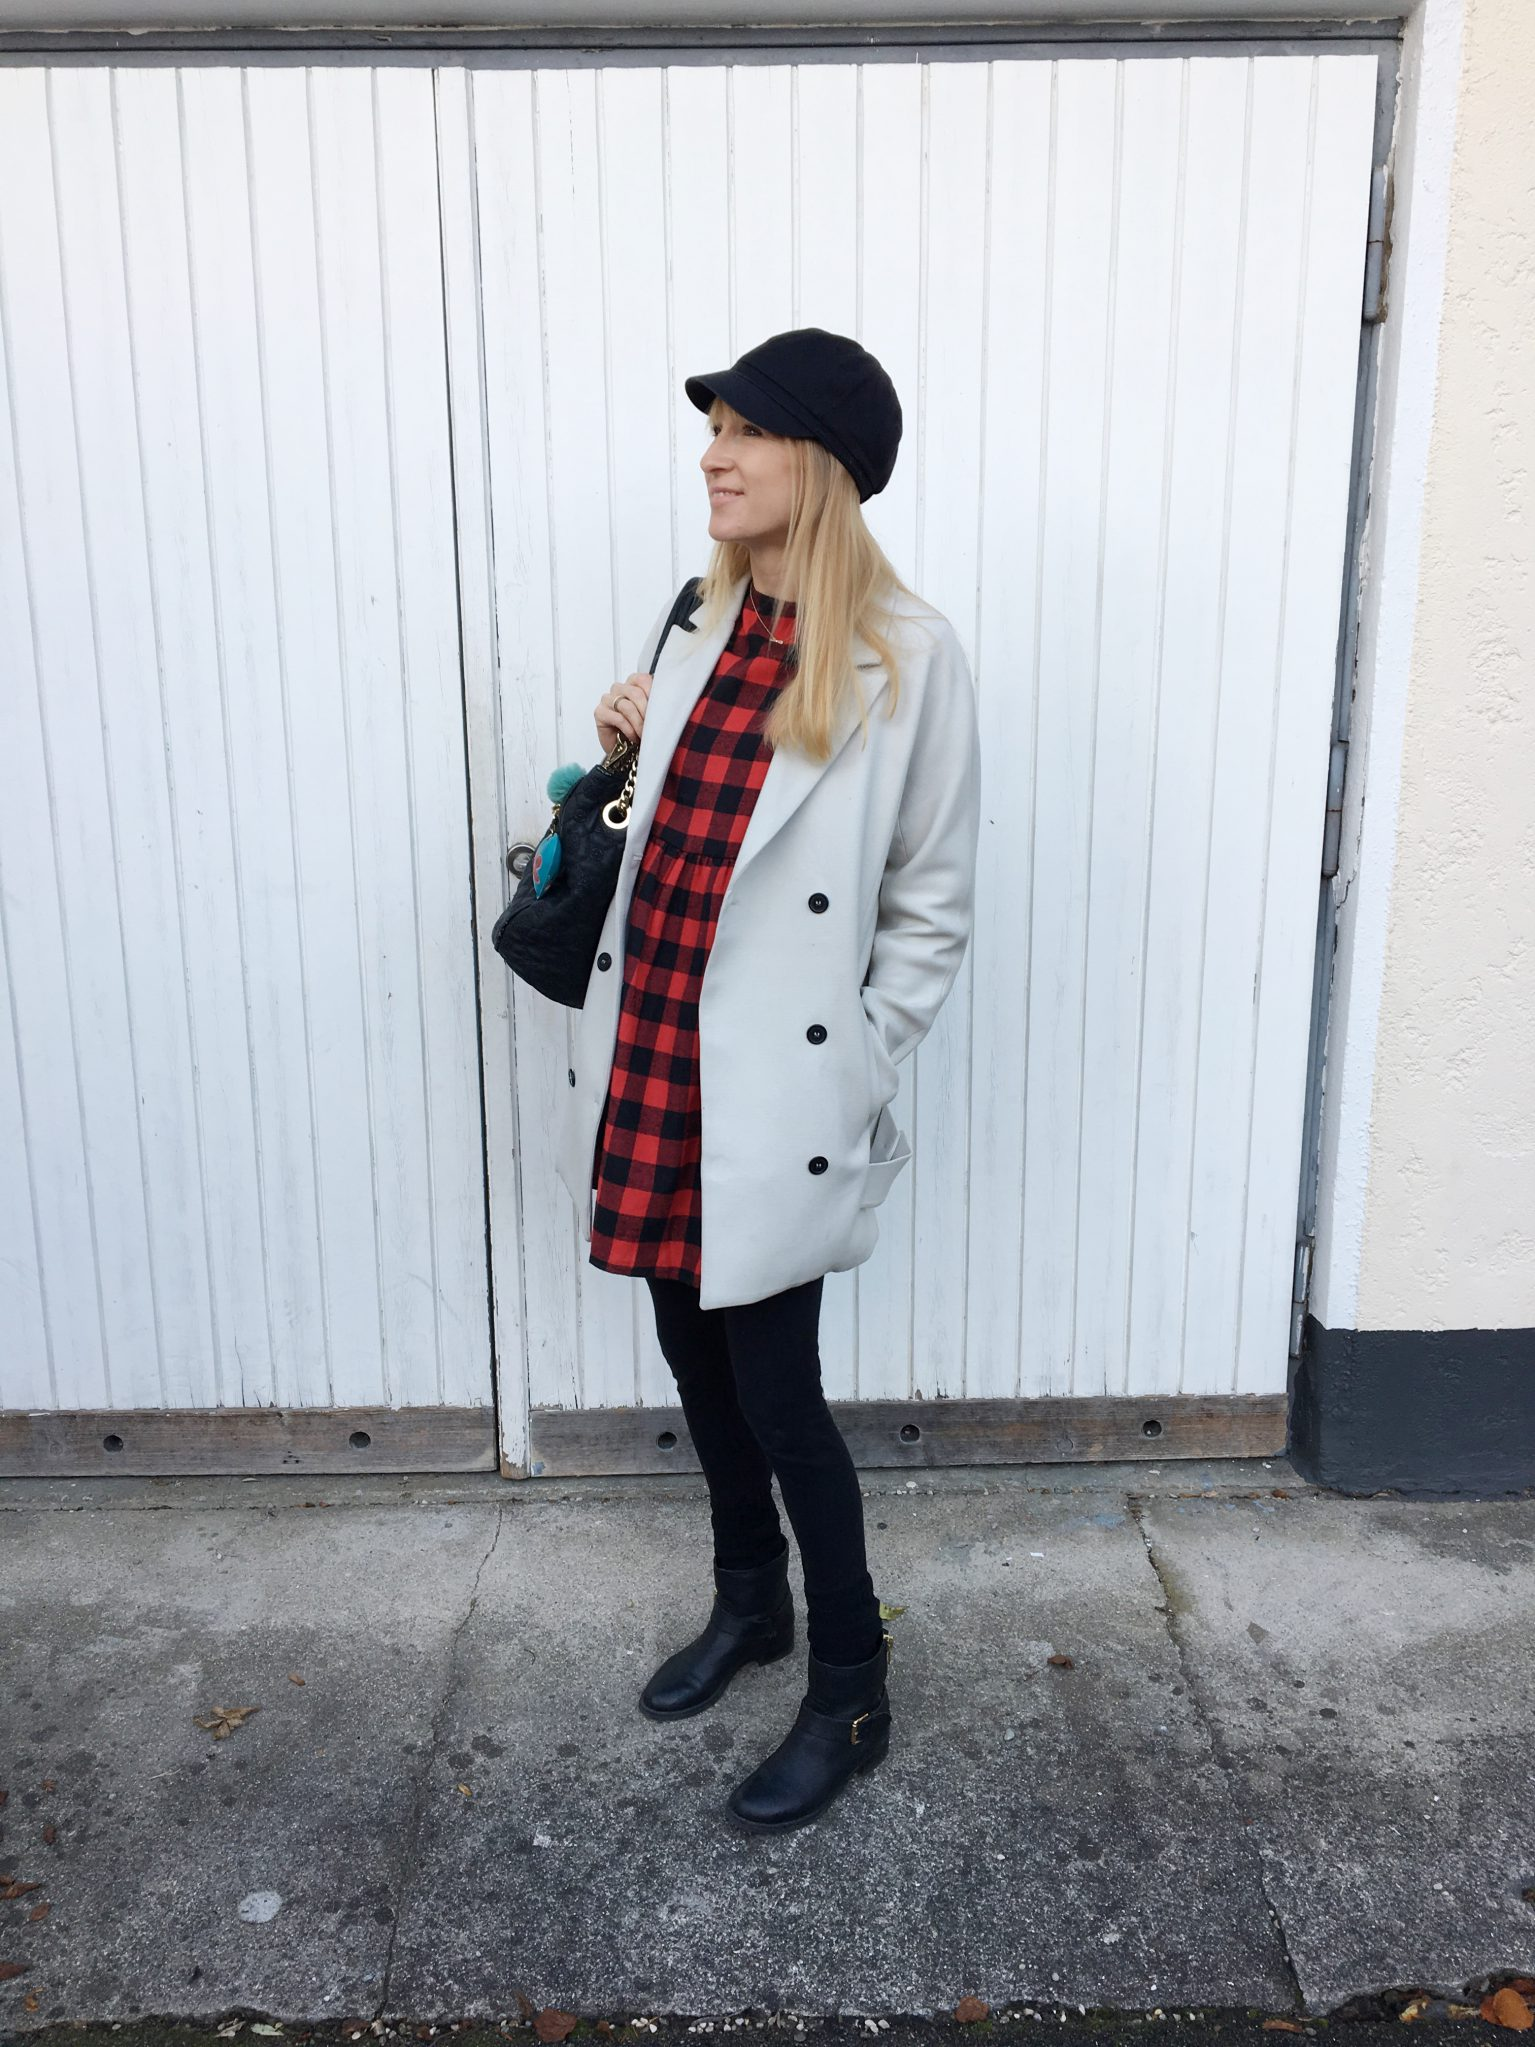 Karokleid, Mamablog, Modeblog, Modemama, Lookoftheday, Outfitinspiration, Kleid von Shein, Mantel, Winterlook